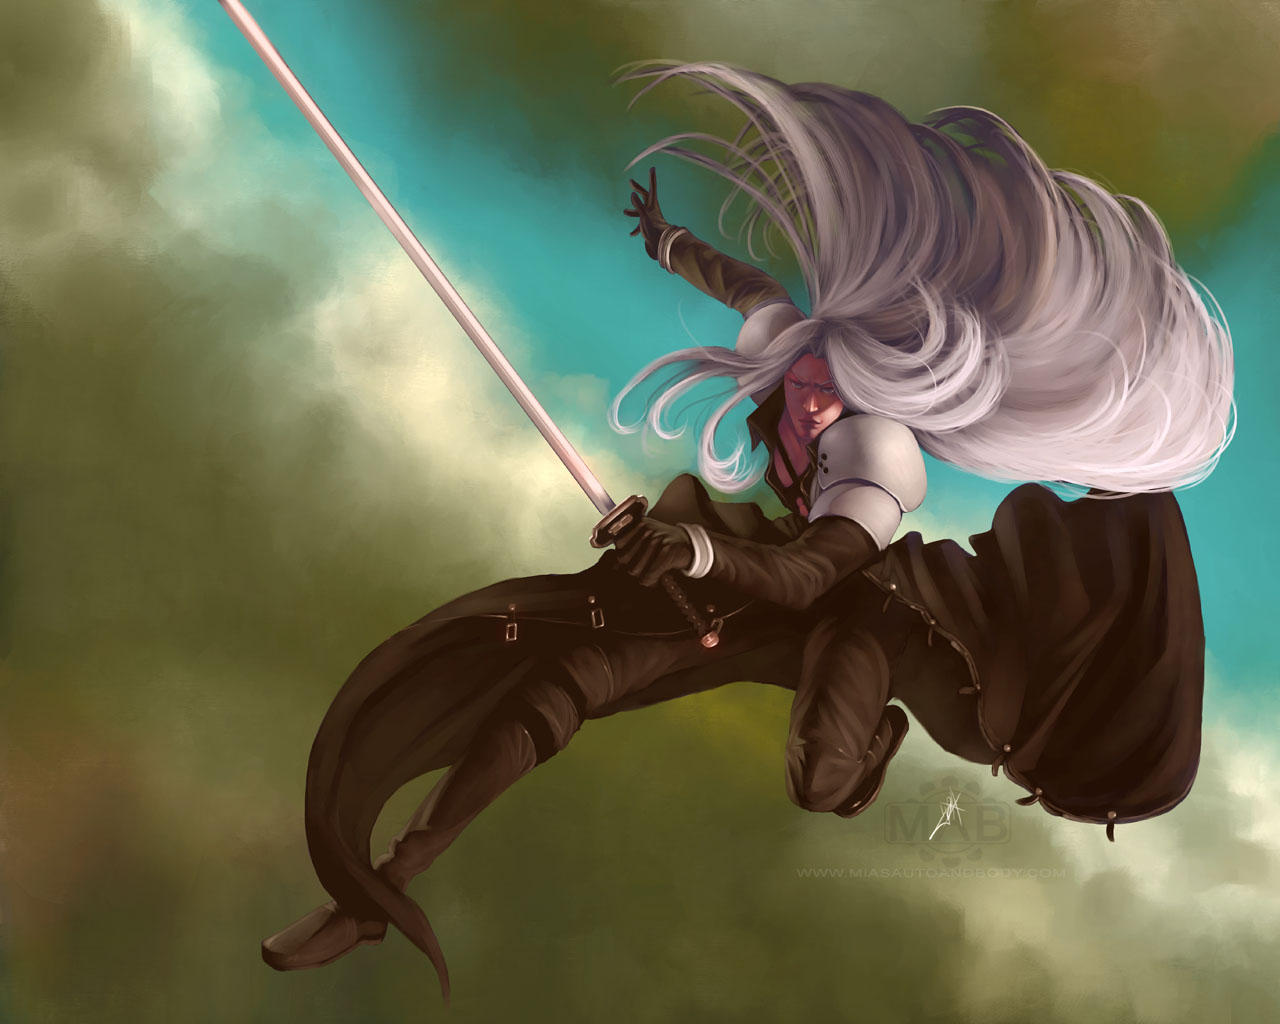 50 Awesome Anime Characters Wallpapers